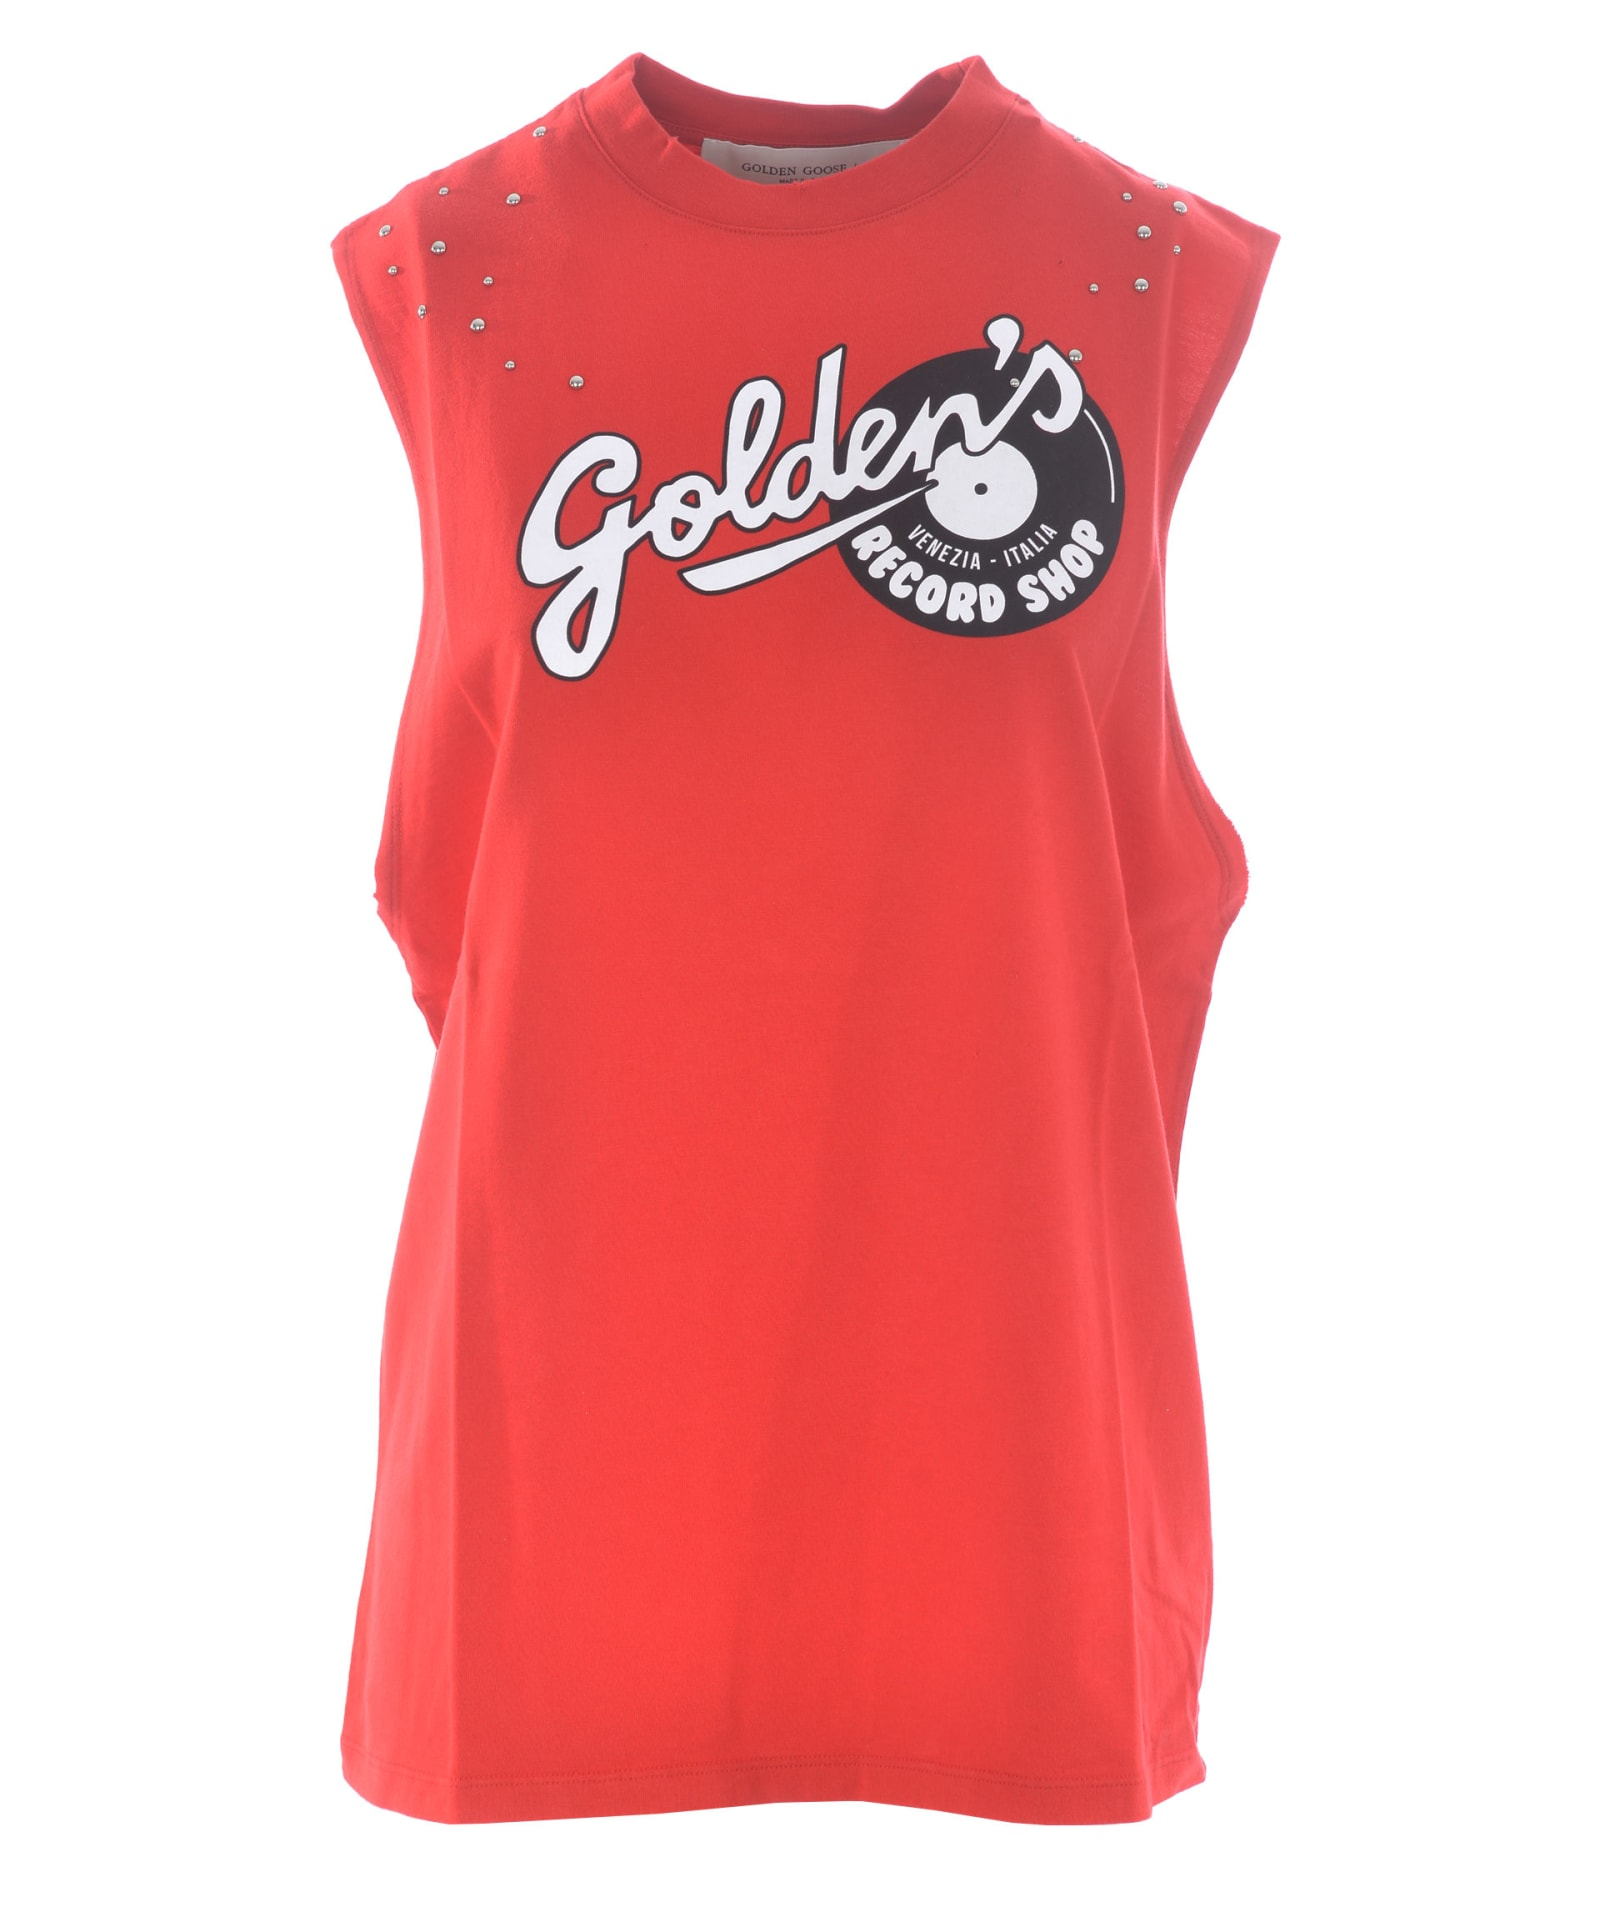 Tank Top from Golden GooseComposition: 100% Cotton